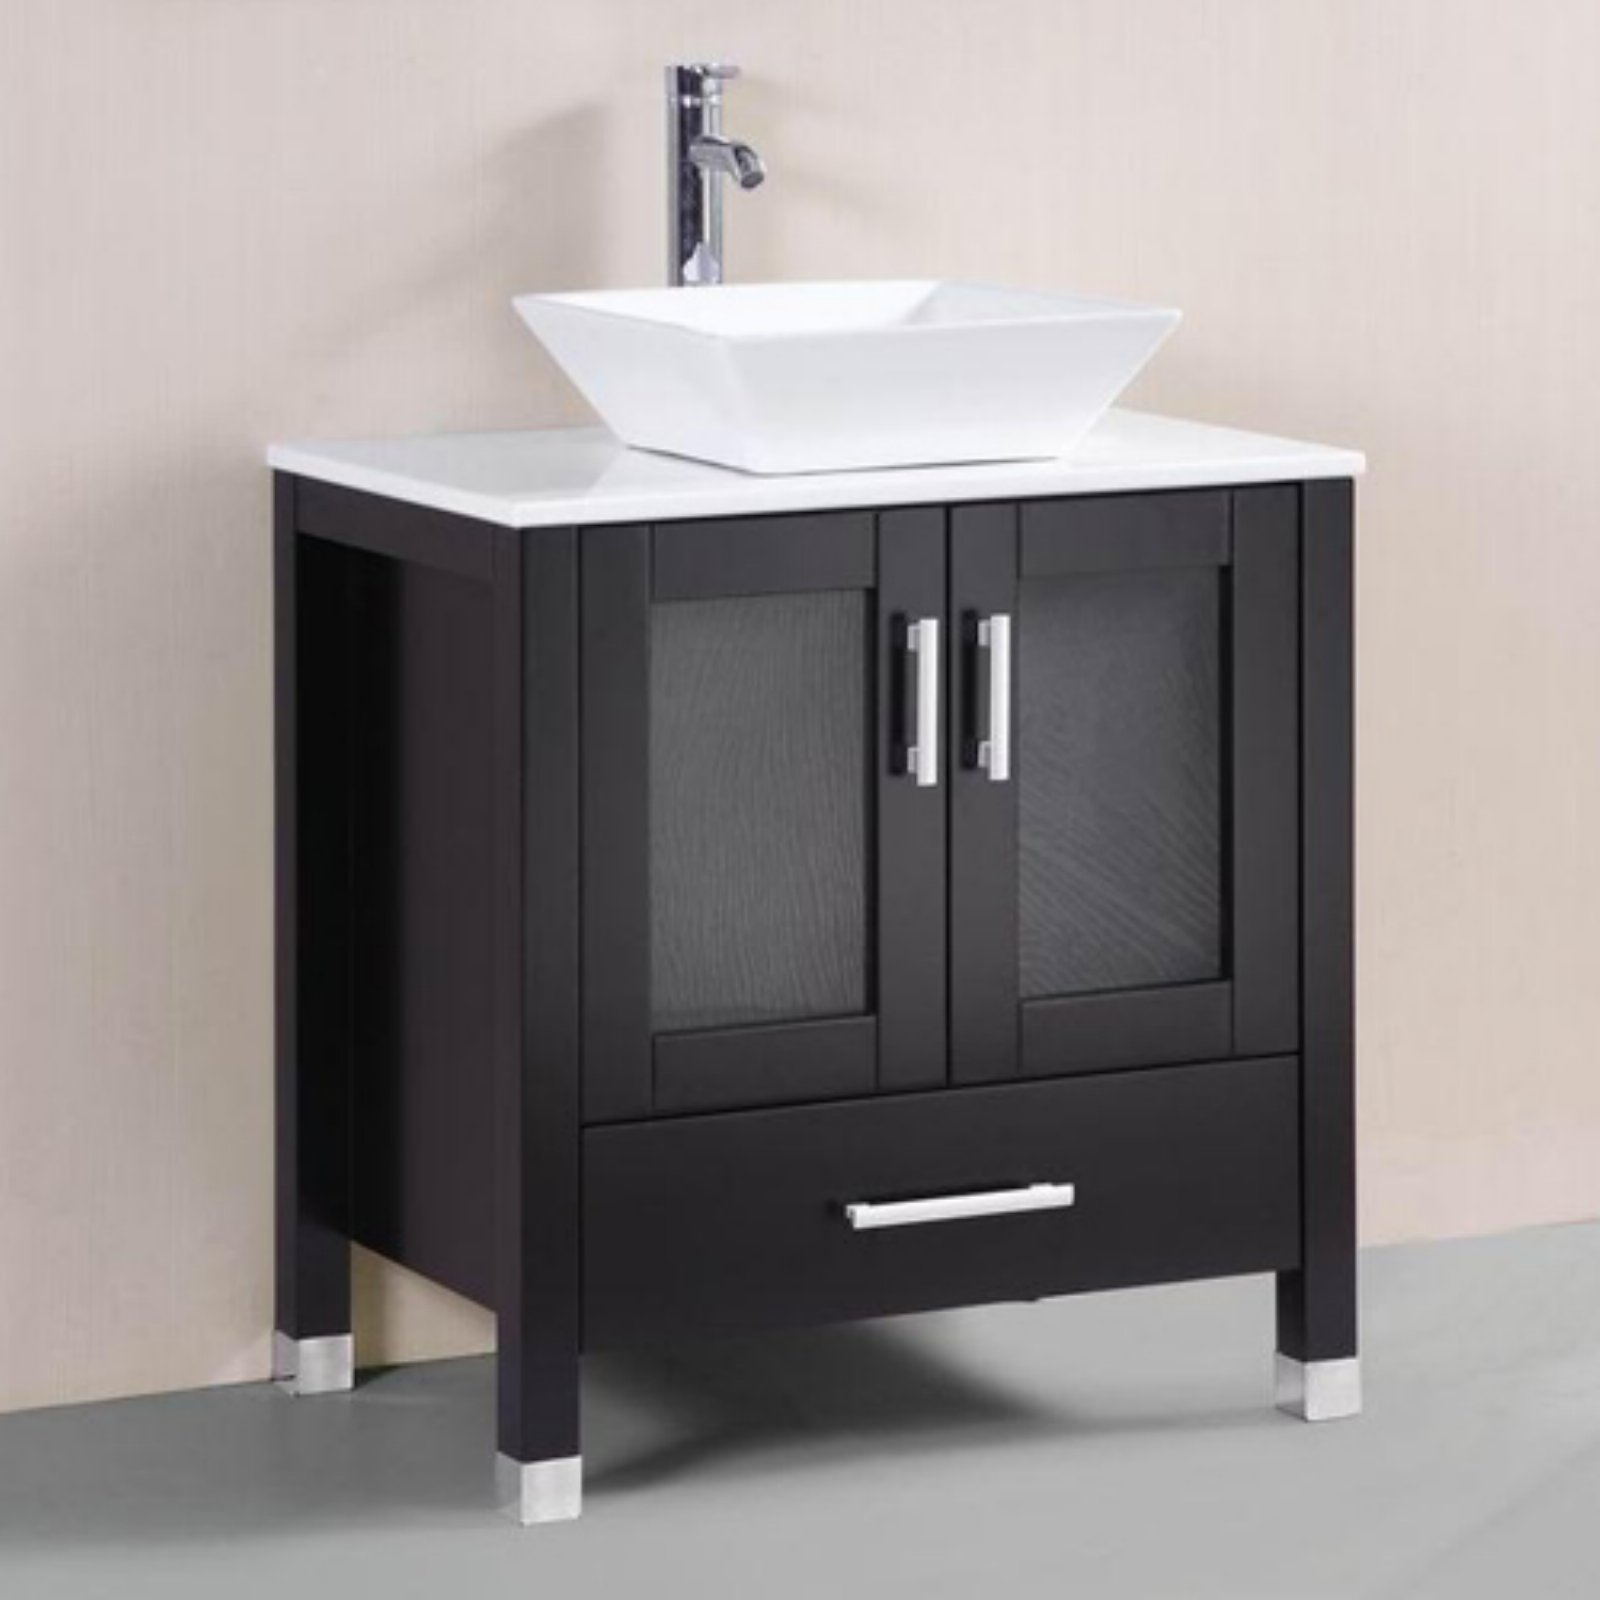 Belvedere 30 in. Modern Single Vessel Bathroom Vanity - Walmart.com